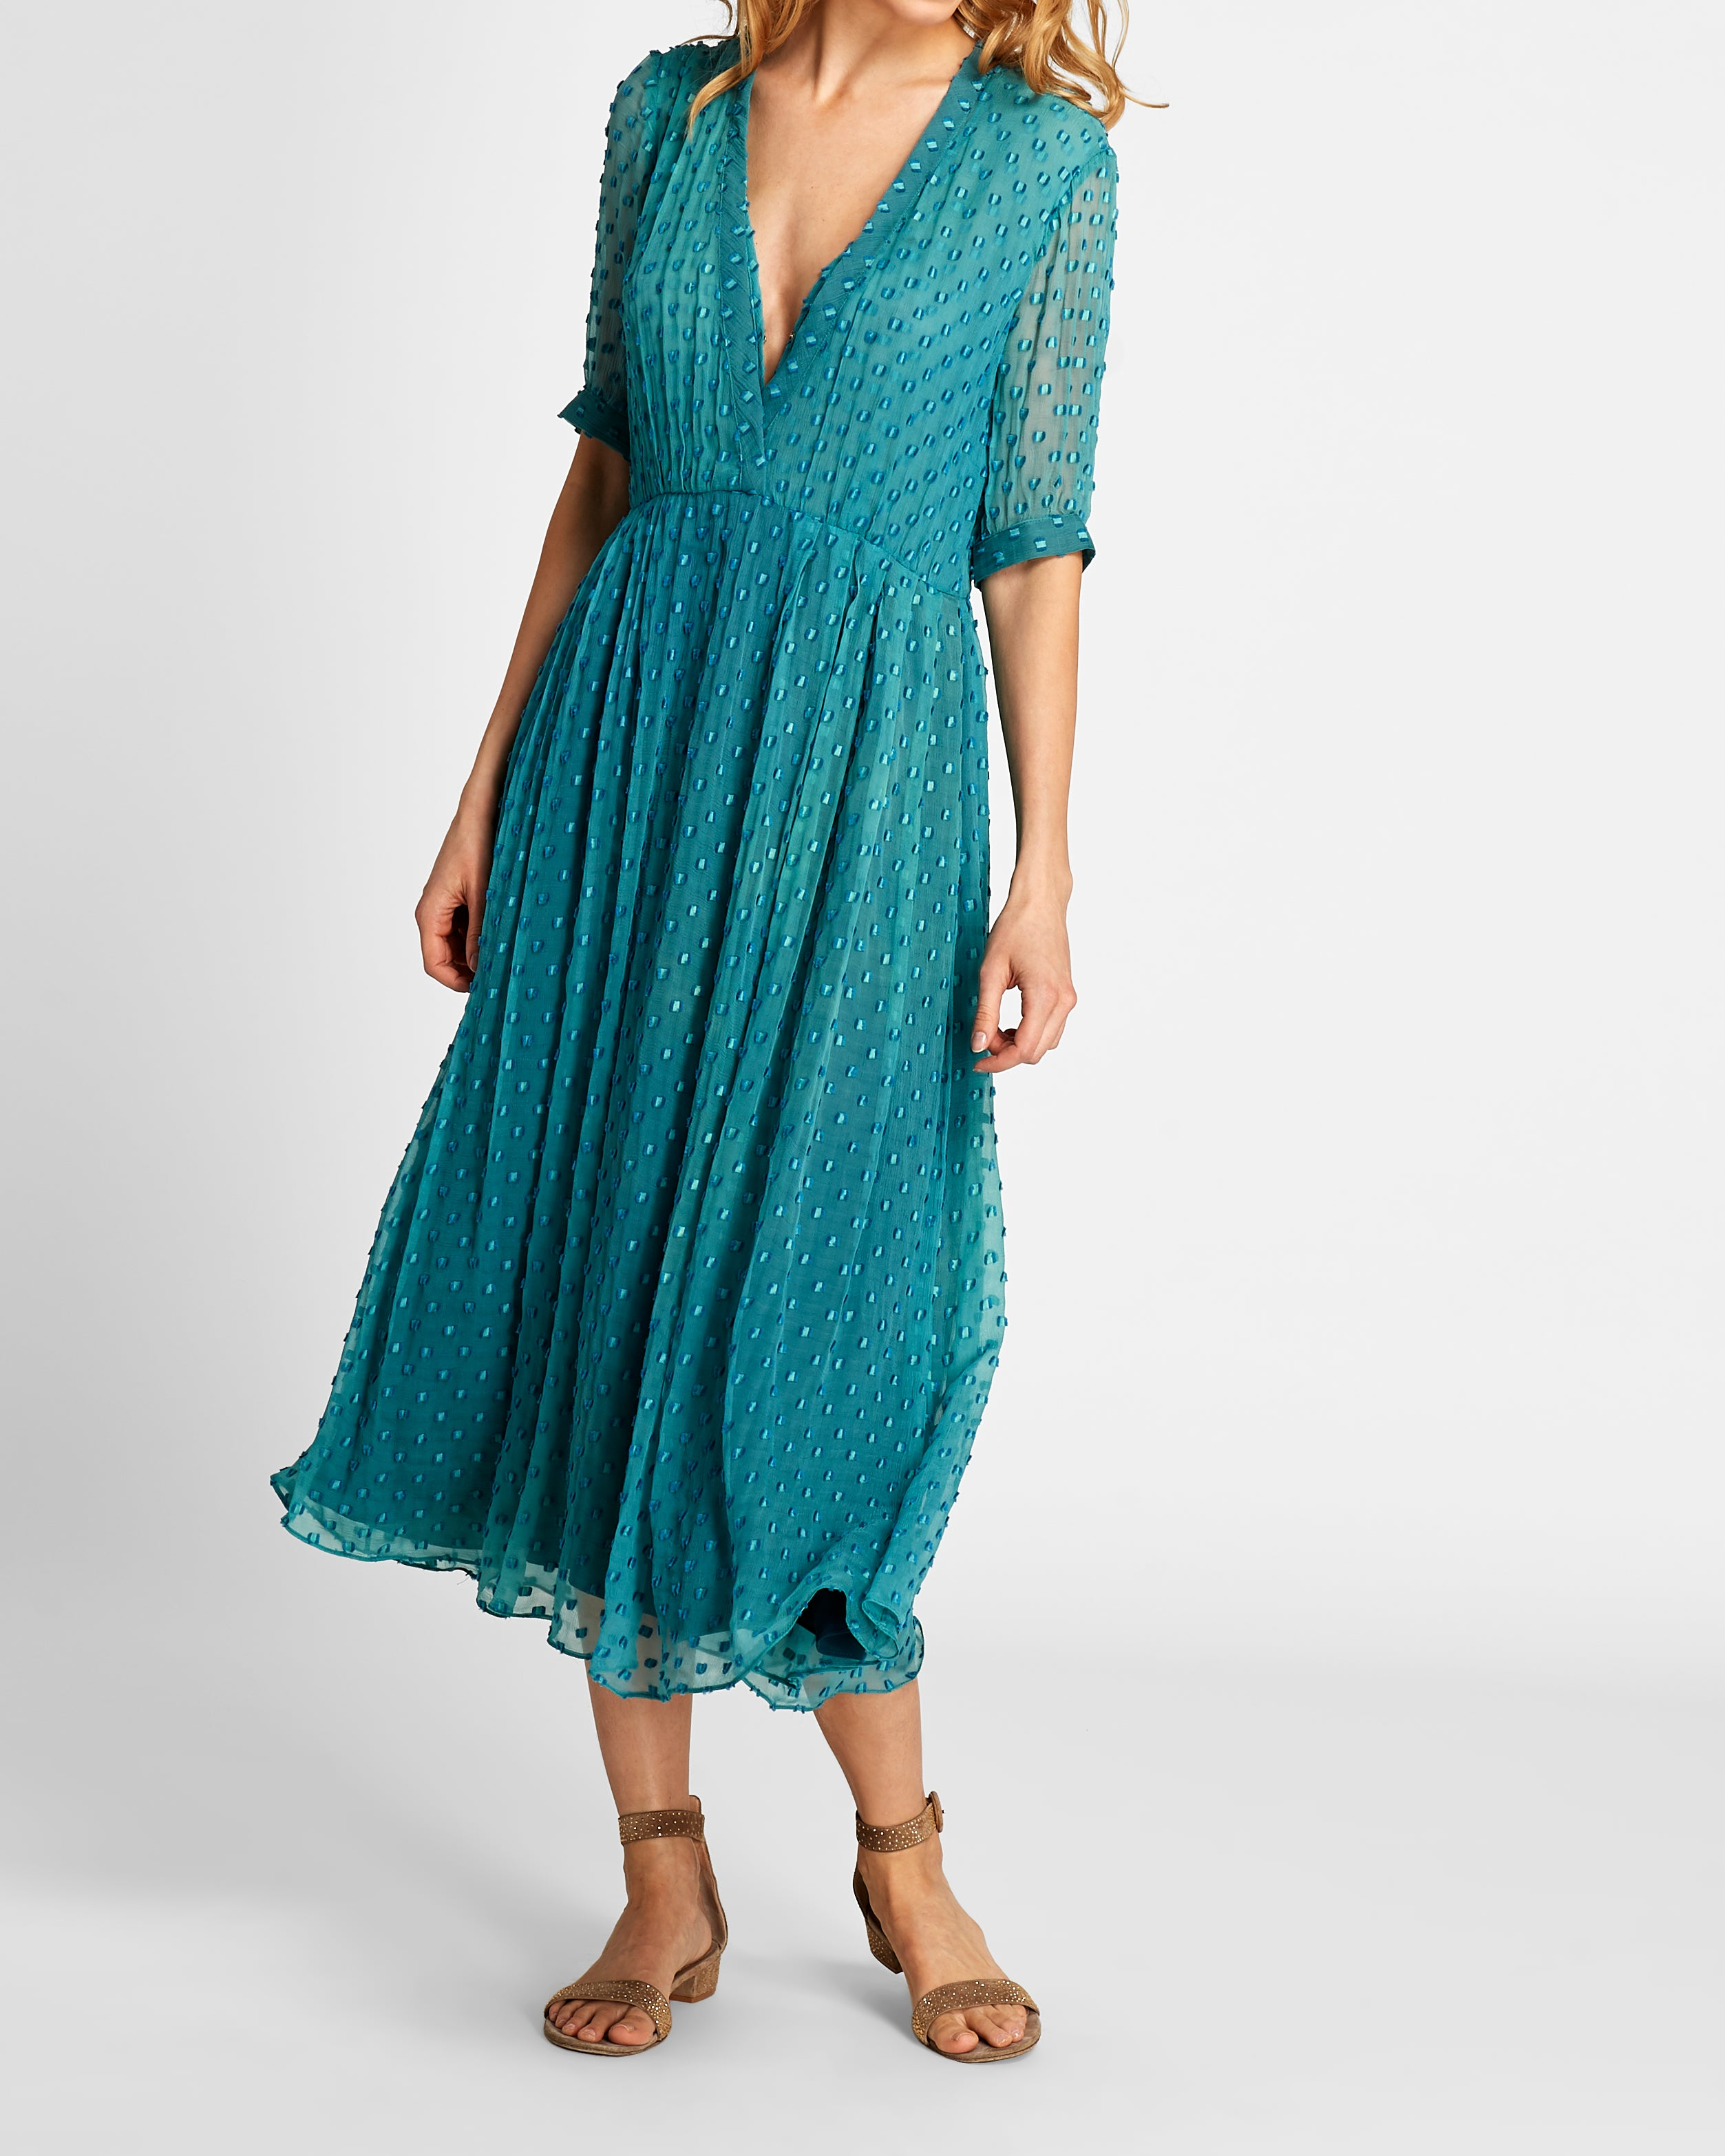 The Ivy Dress | Azure